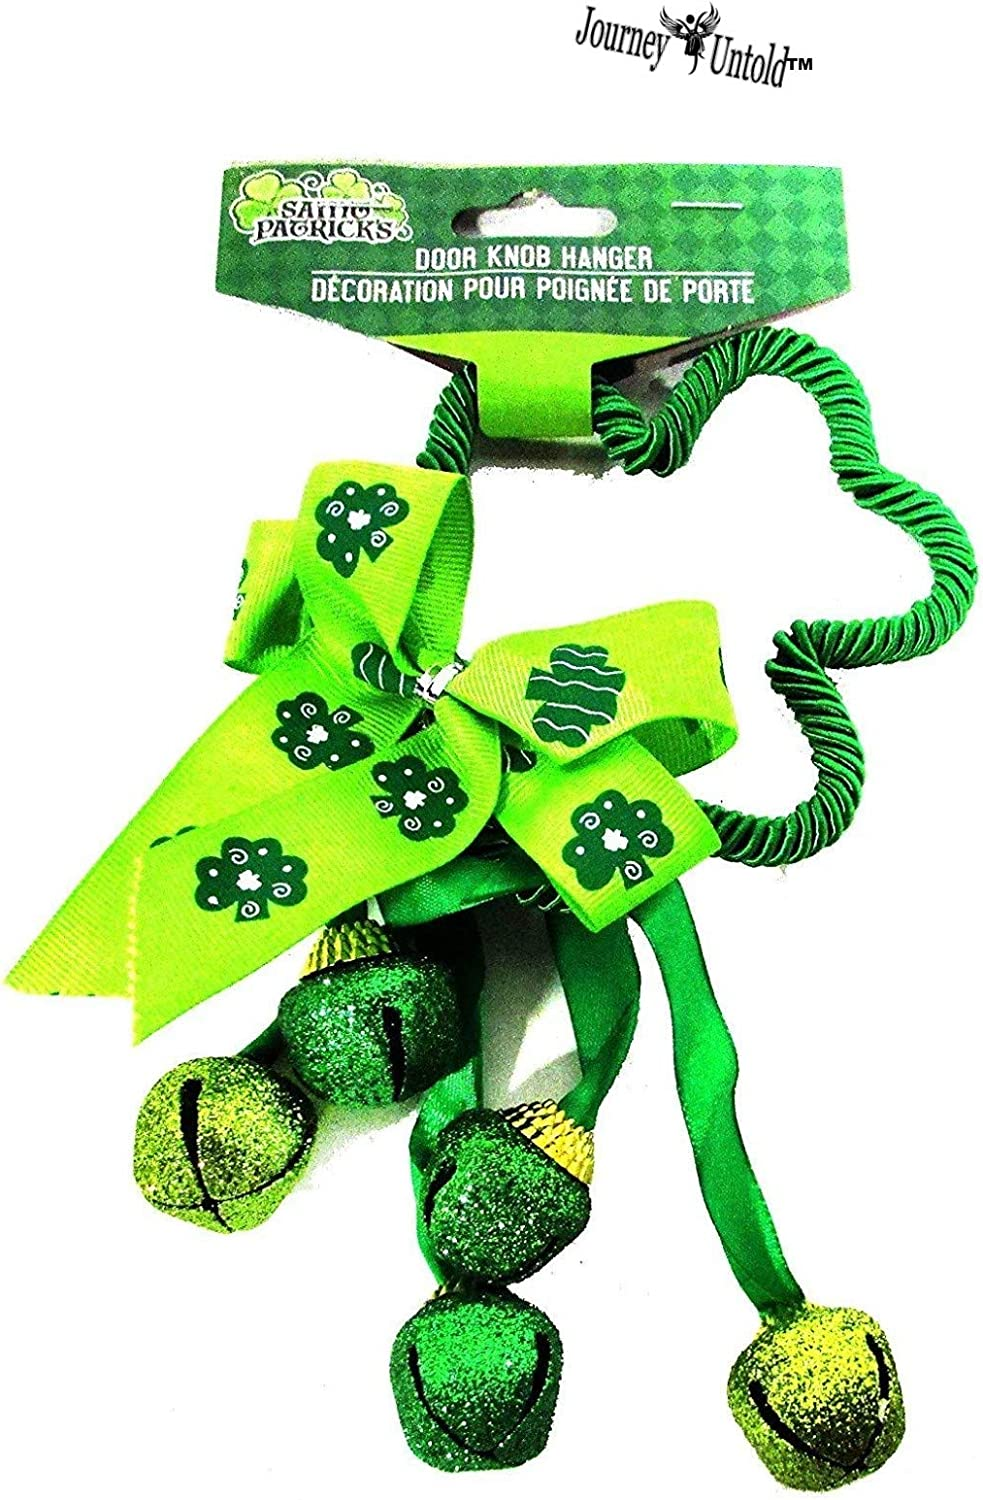 St Patrick BCL Glitter SHIMMERS Super Fun Cute Kelly Green Door Knob Hanger with Bells